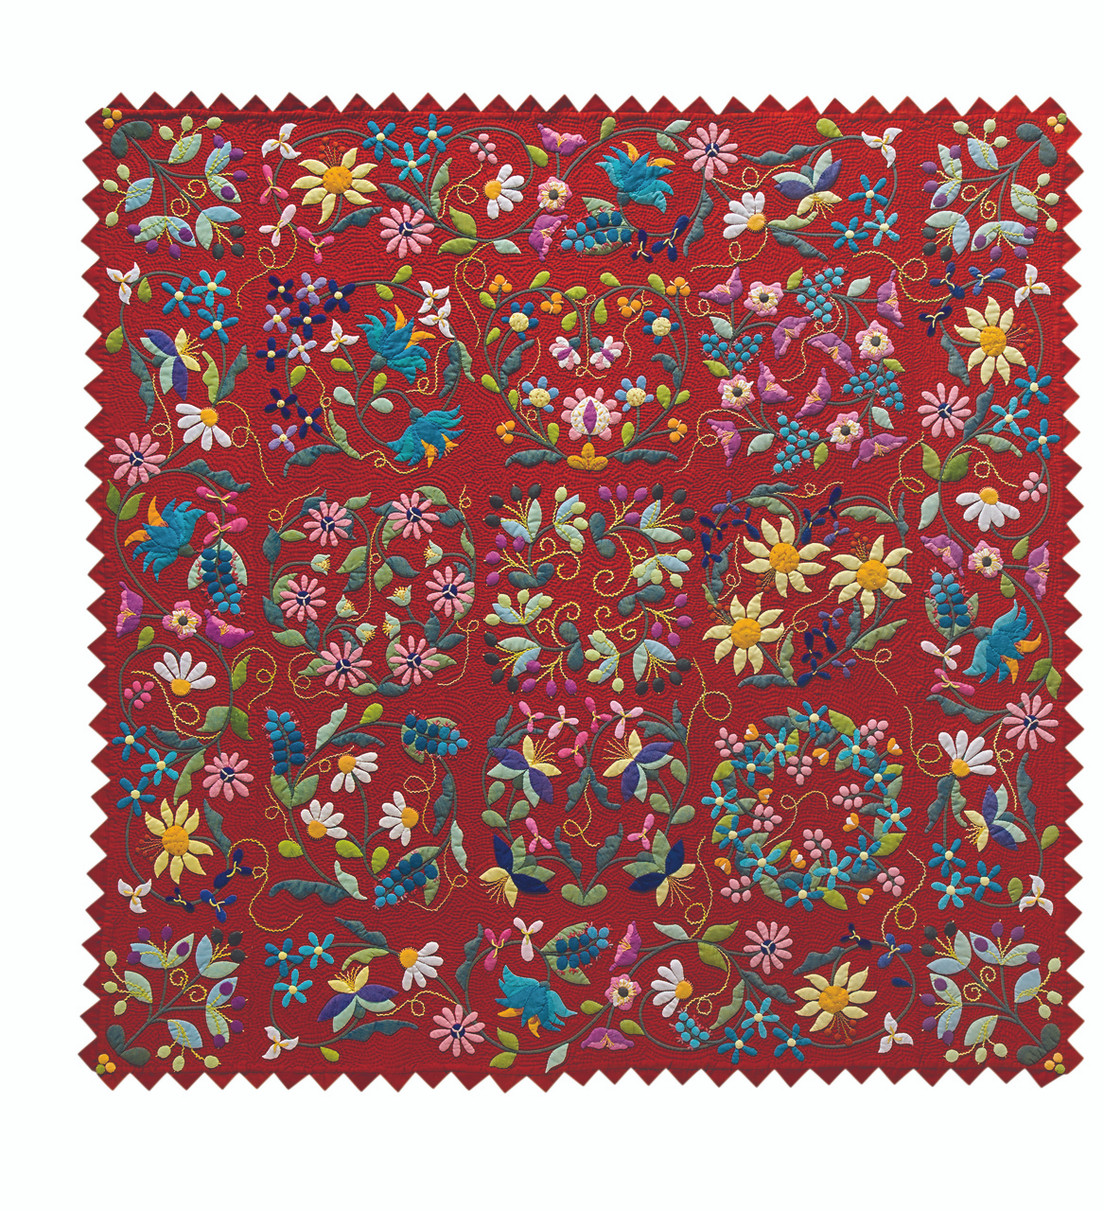 This pattern pack includes complete instructions for a gorgeous floral quilt in two colorways, plus instructions to turn any of the 9 blocks into a sophisticated pillow.